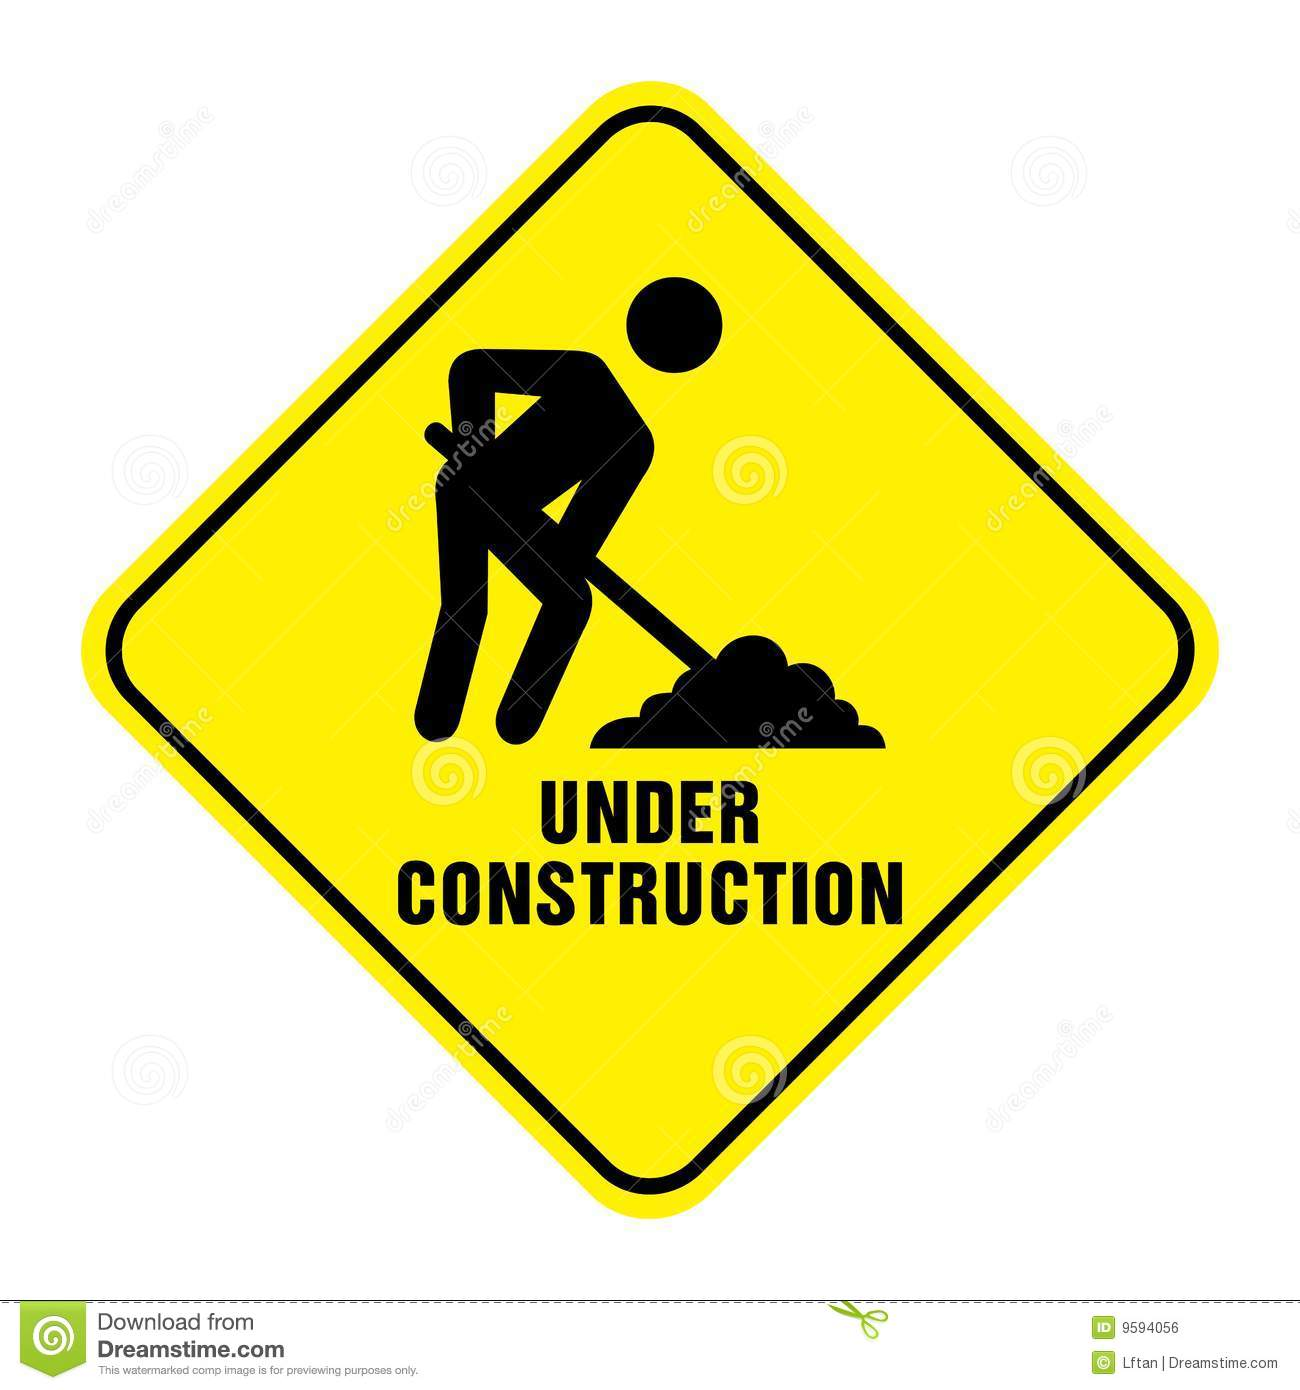 Road Under Construction Sign Royalty Free Stock Image - Image: 9594056